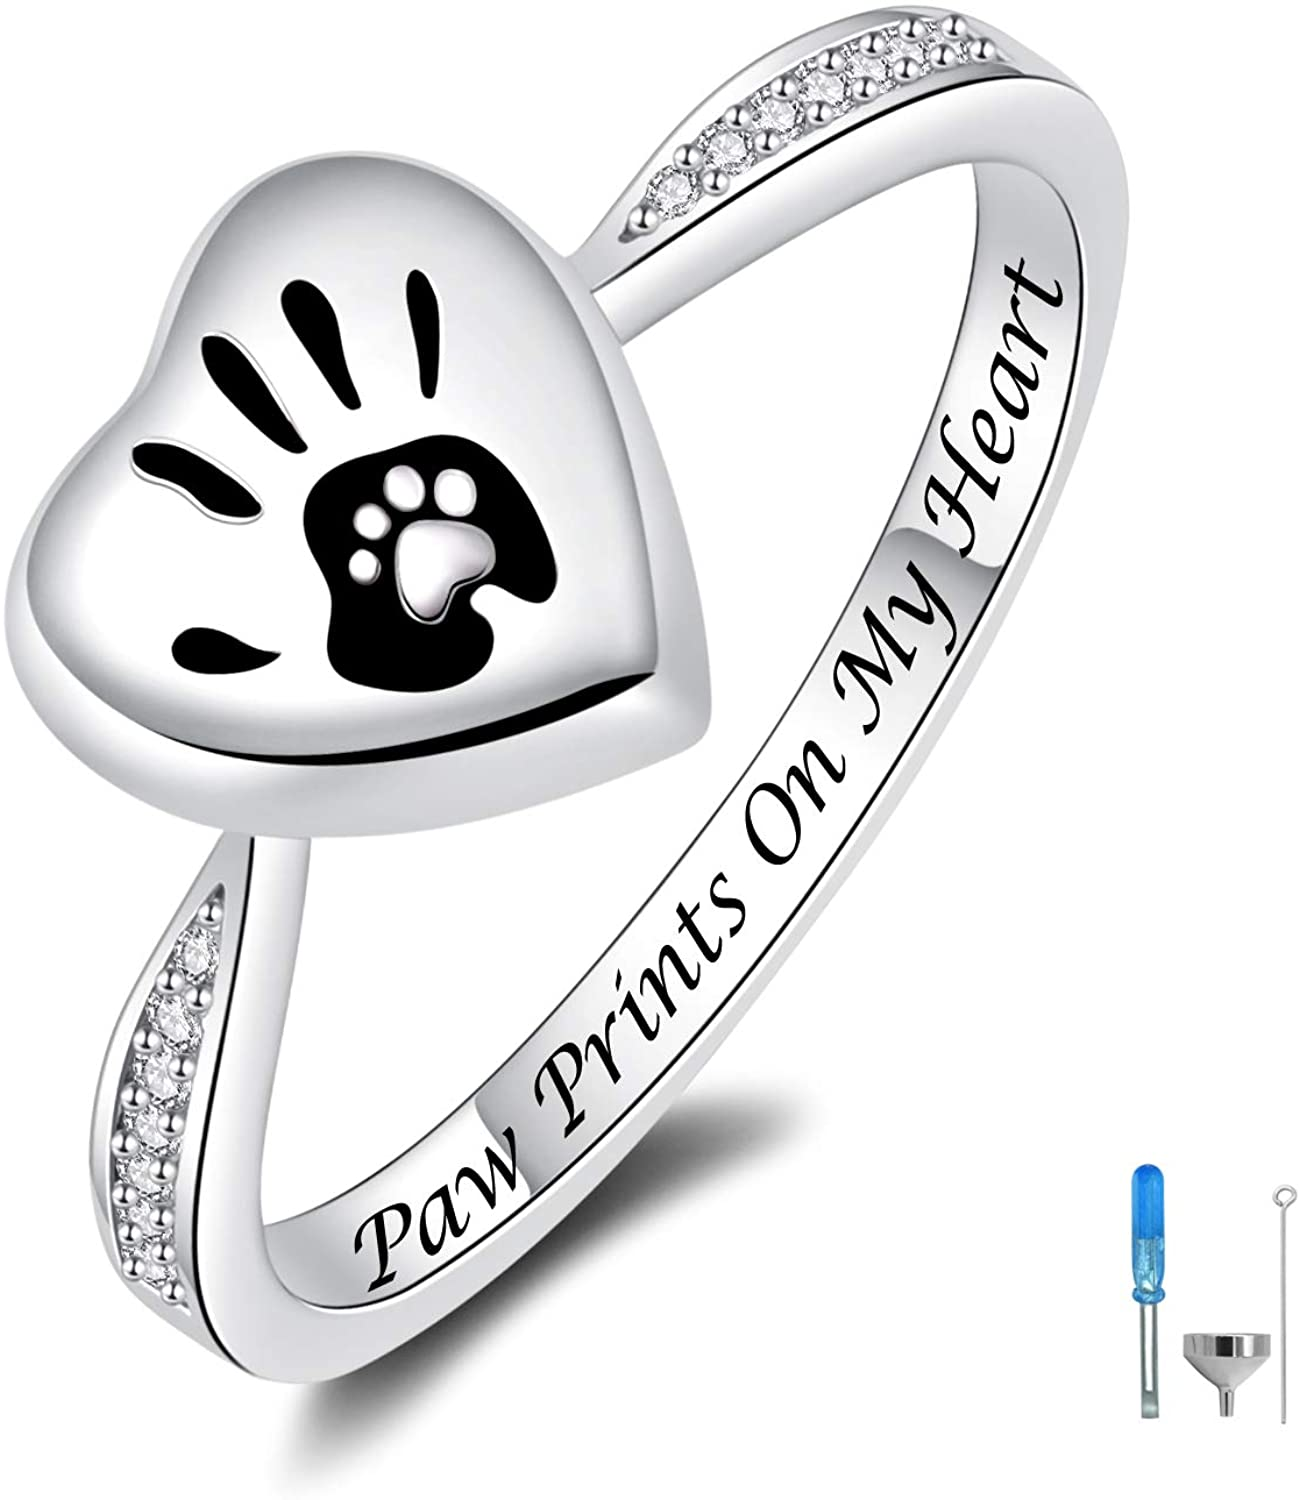 JXJL Sterling Silver Memorial Jewelry Rose Flower/Wing/Paw Urn Ring Exquisite Loved One Ashes Keepsake Holder Cremation Funeral Gift Forever Always in My Heart